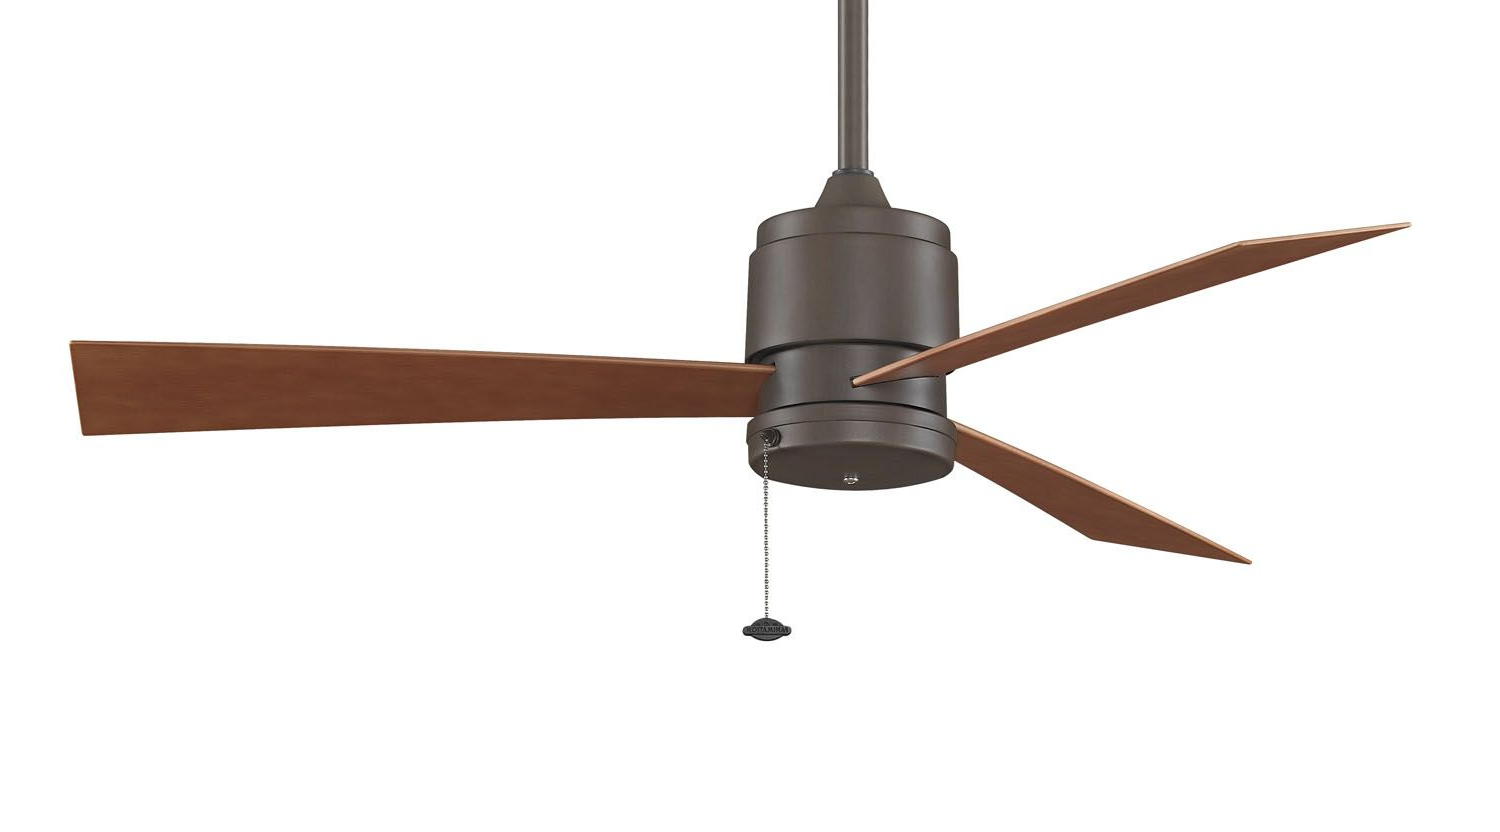 Airplane Propeller Outdoor Ceiling Fan (View 13 of 20)